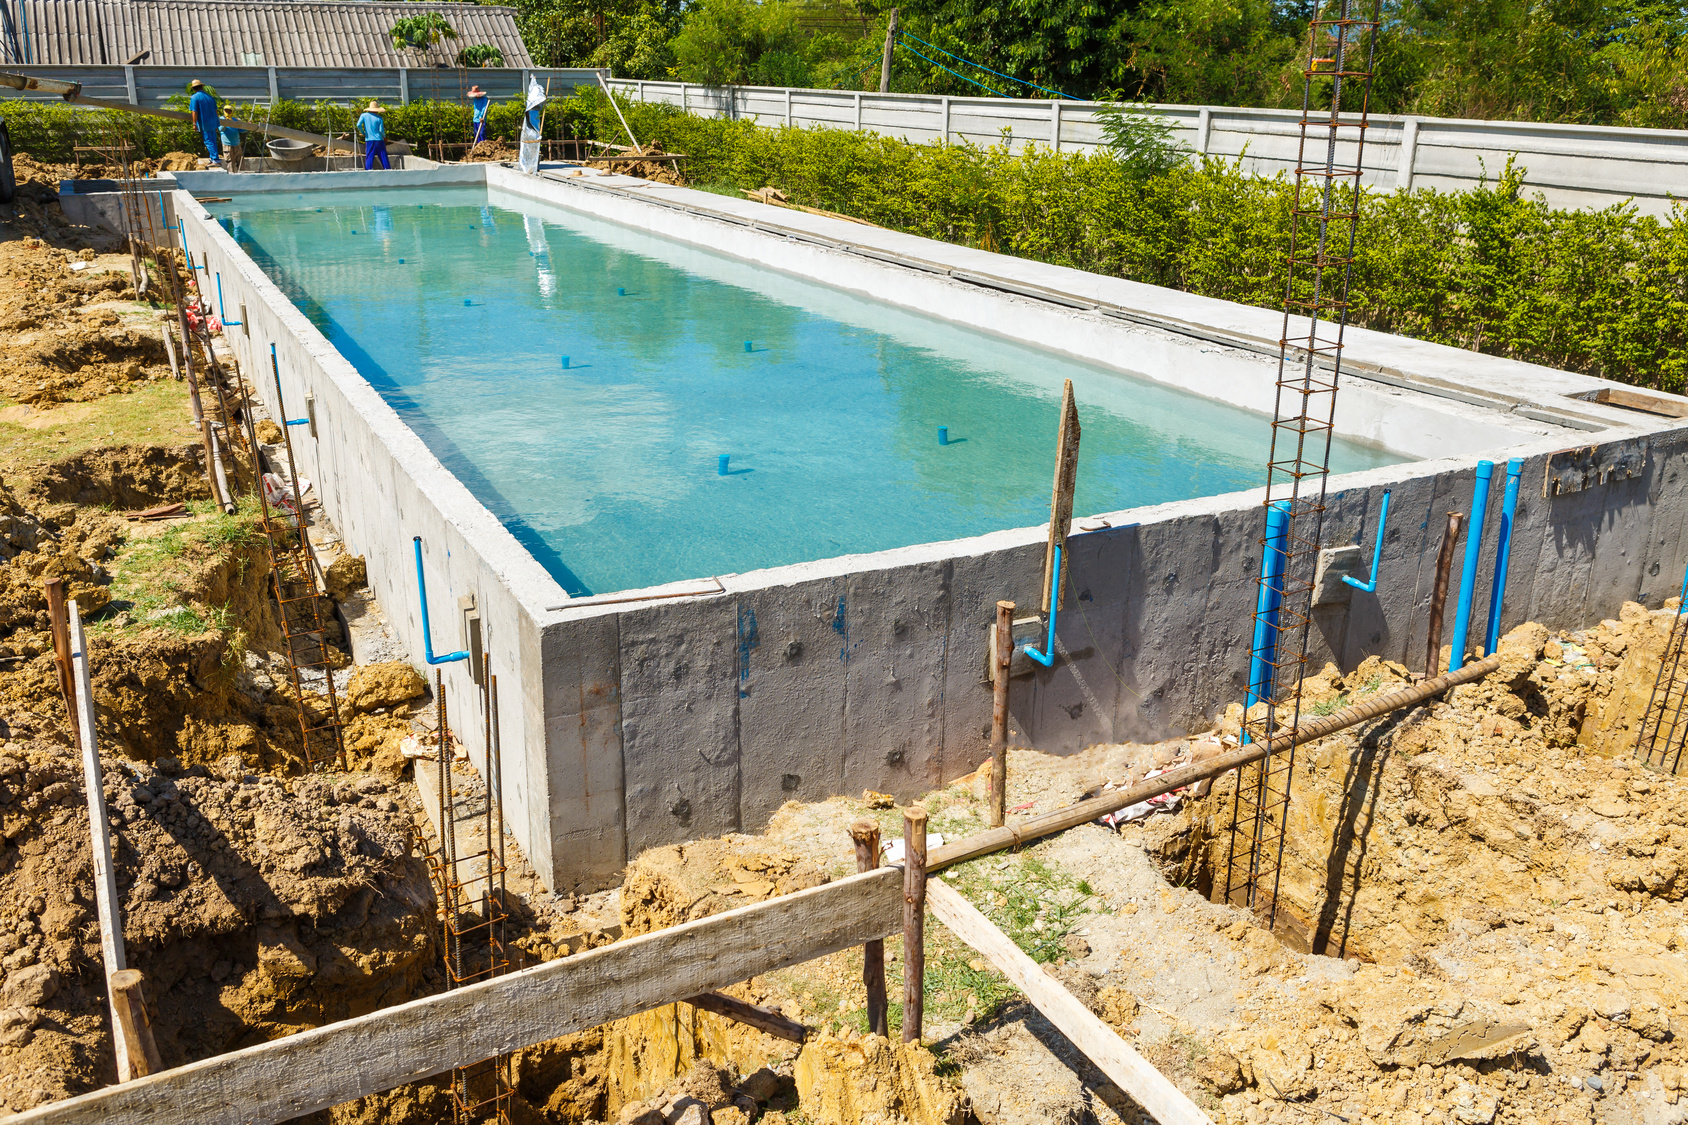 Construire une piscine b ton traditionnelle en kit for Piscine beton prix